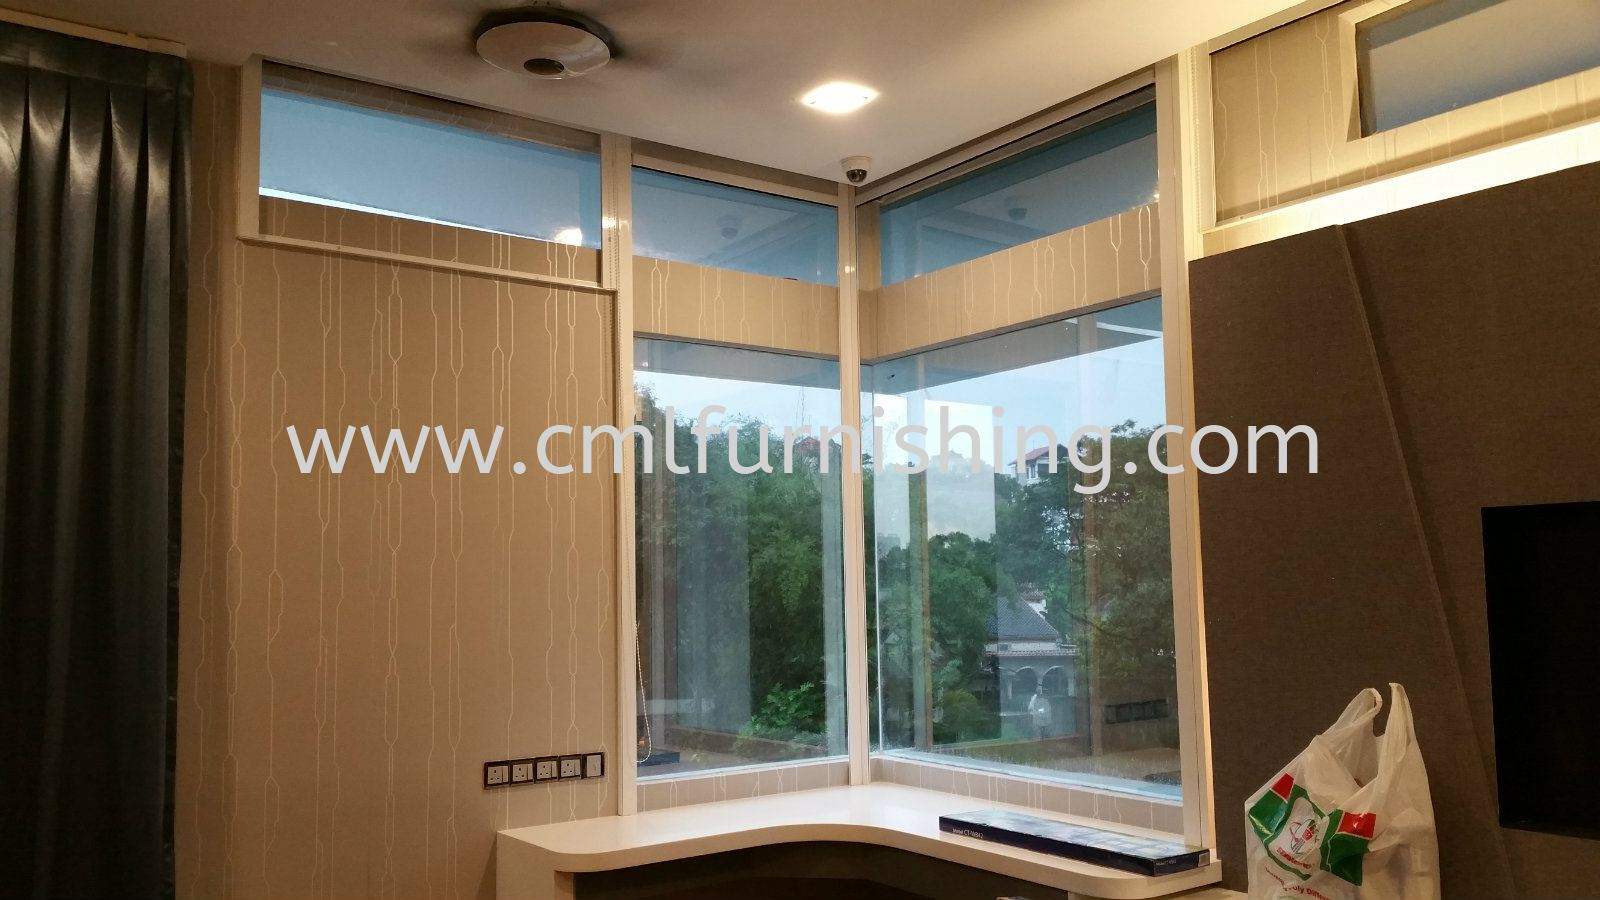 Wallpaper , Motorized Curtain , Wall Panel , S-Wave Vertical , Zibra , Motorized Roller